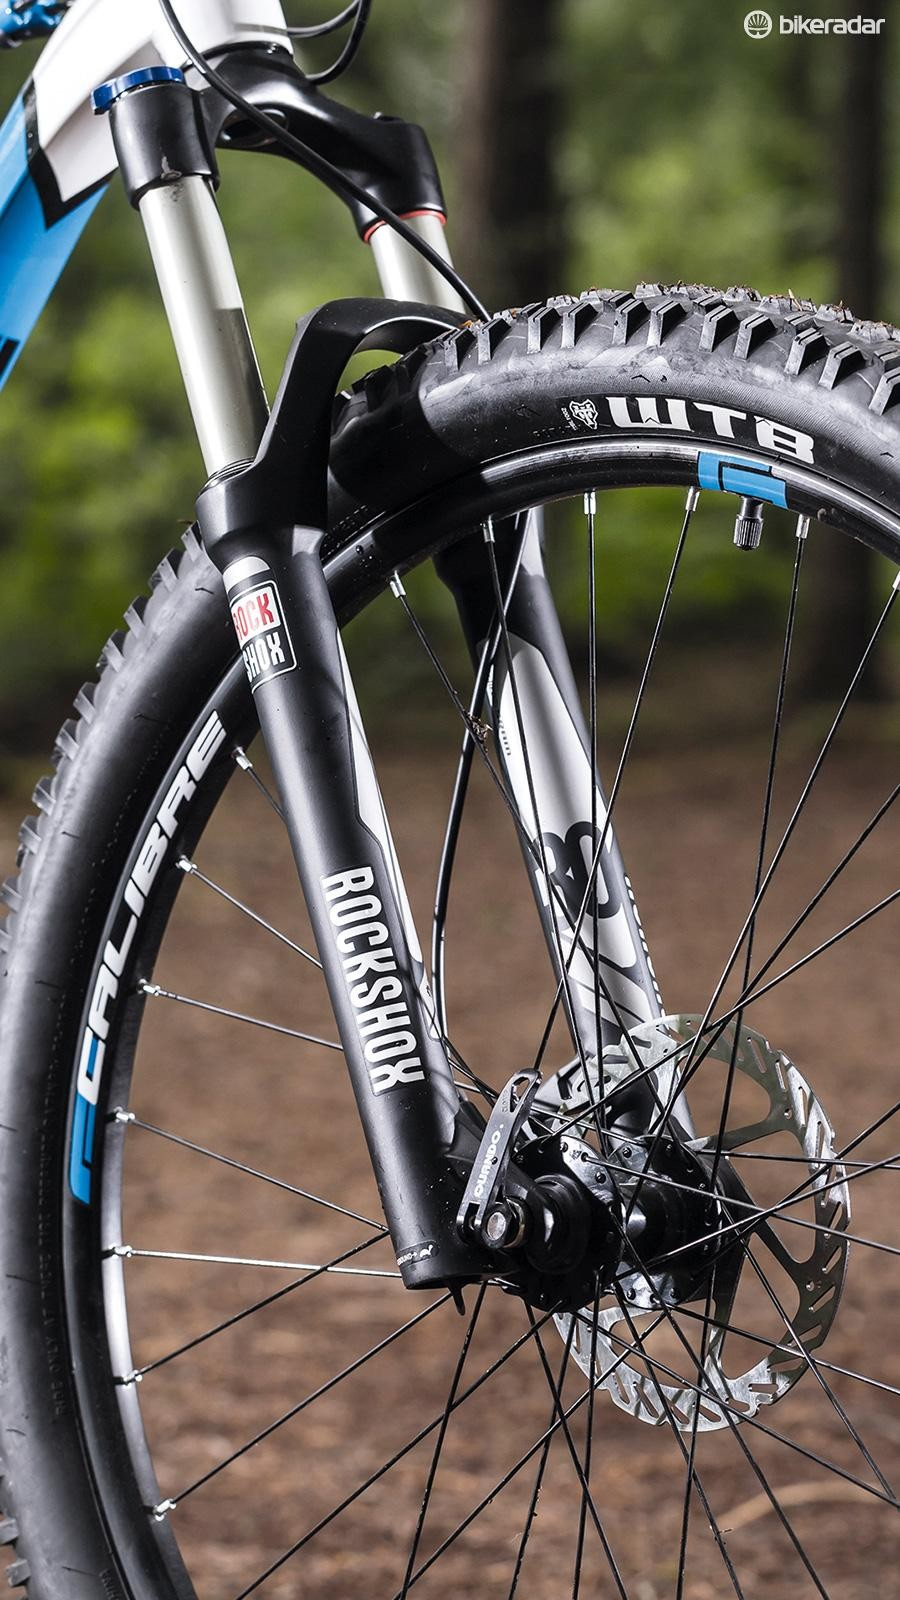 Calibre Gauntlet review - BikeRadar